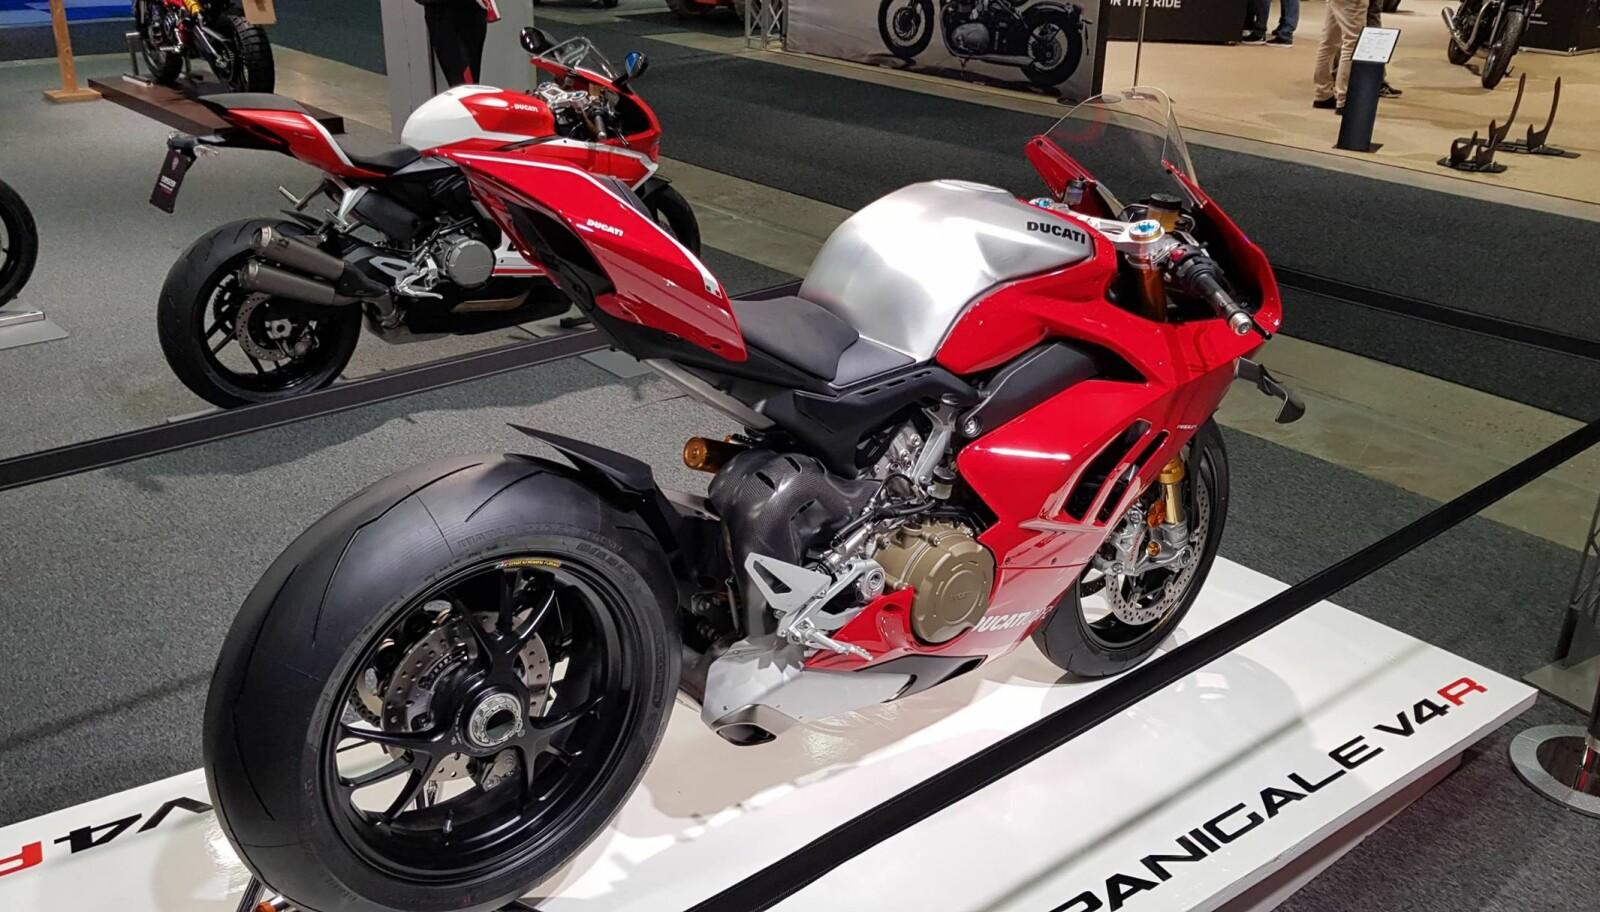 <b>MC-MESSA:</b> Ducati Panigale V4 R på standen til Eker Performance på MC-messa.